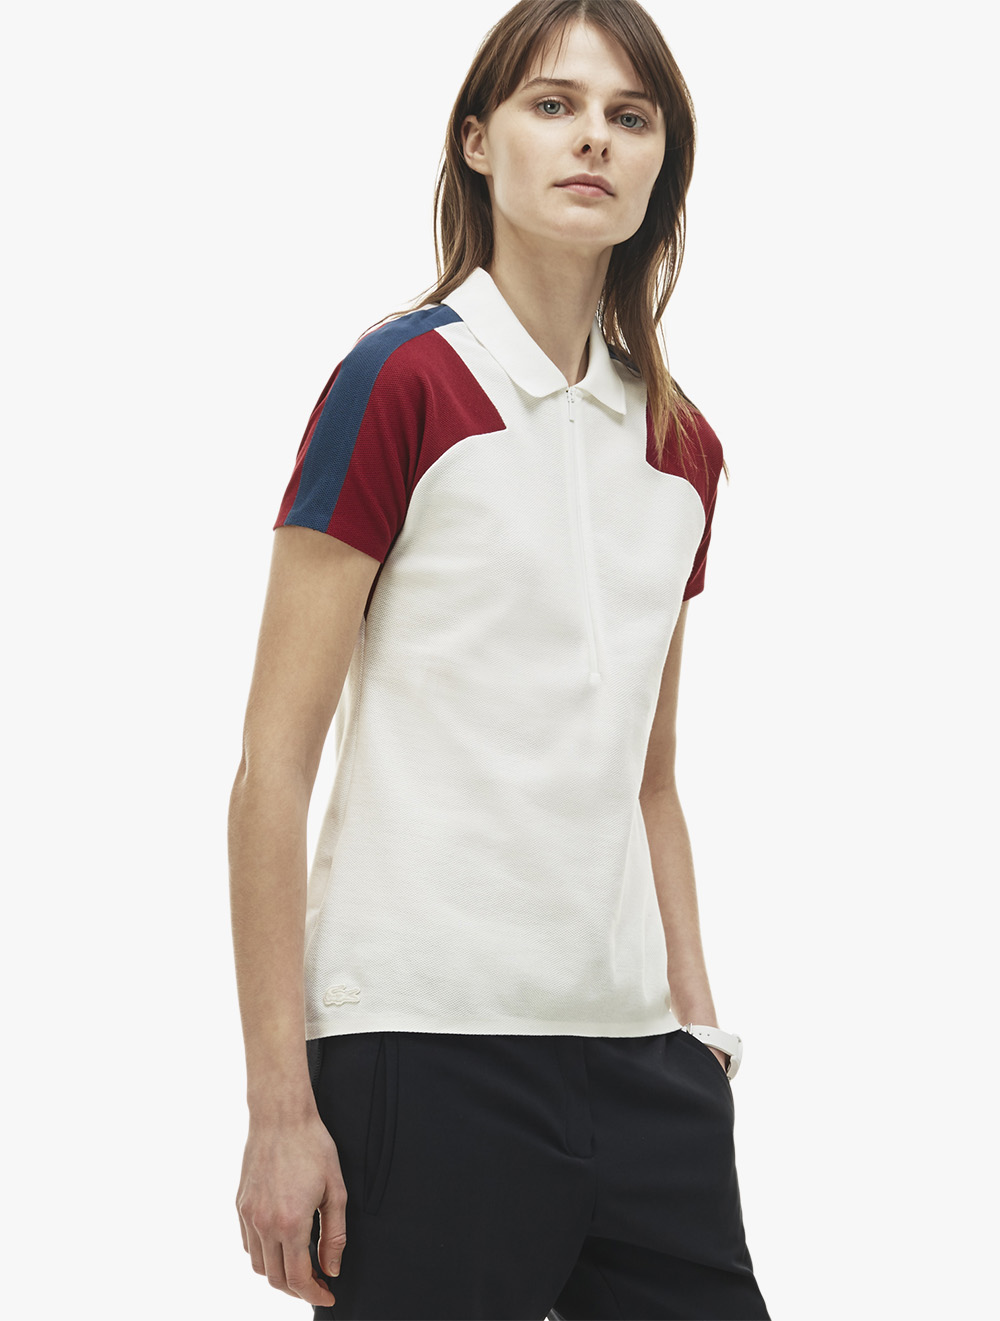 In Fit Made Polo Slim Pique France Neck Zip F51TKJ3ulc